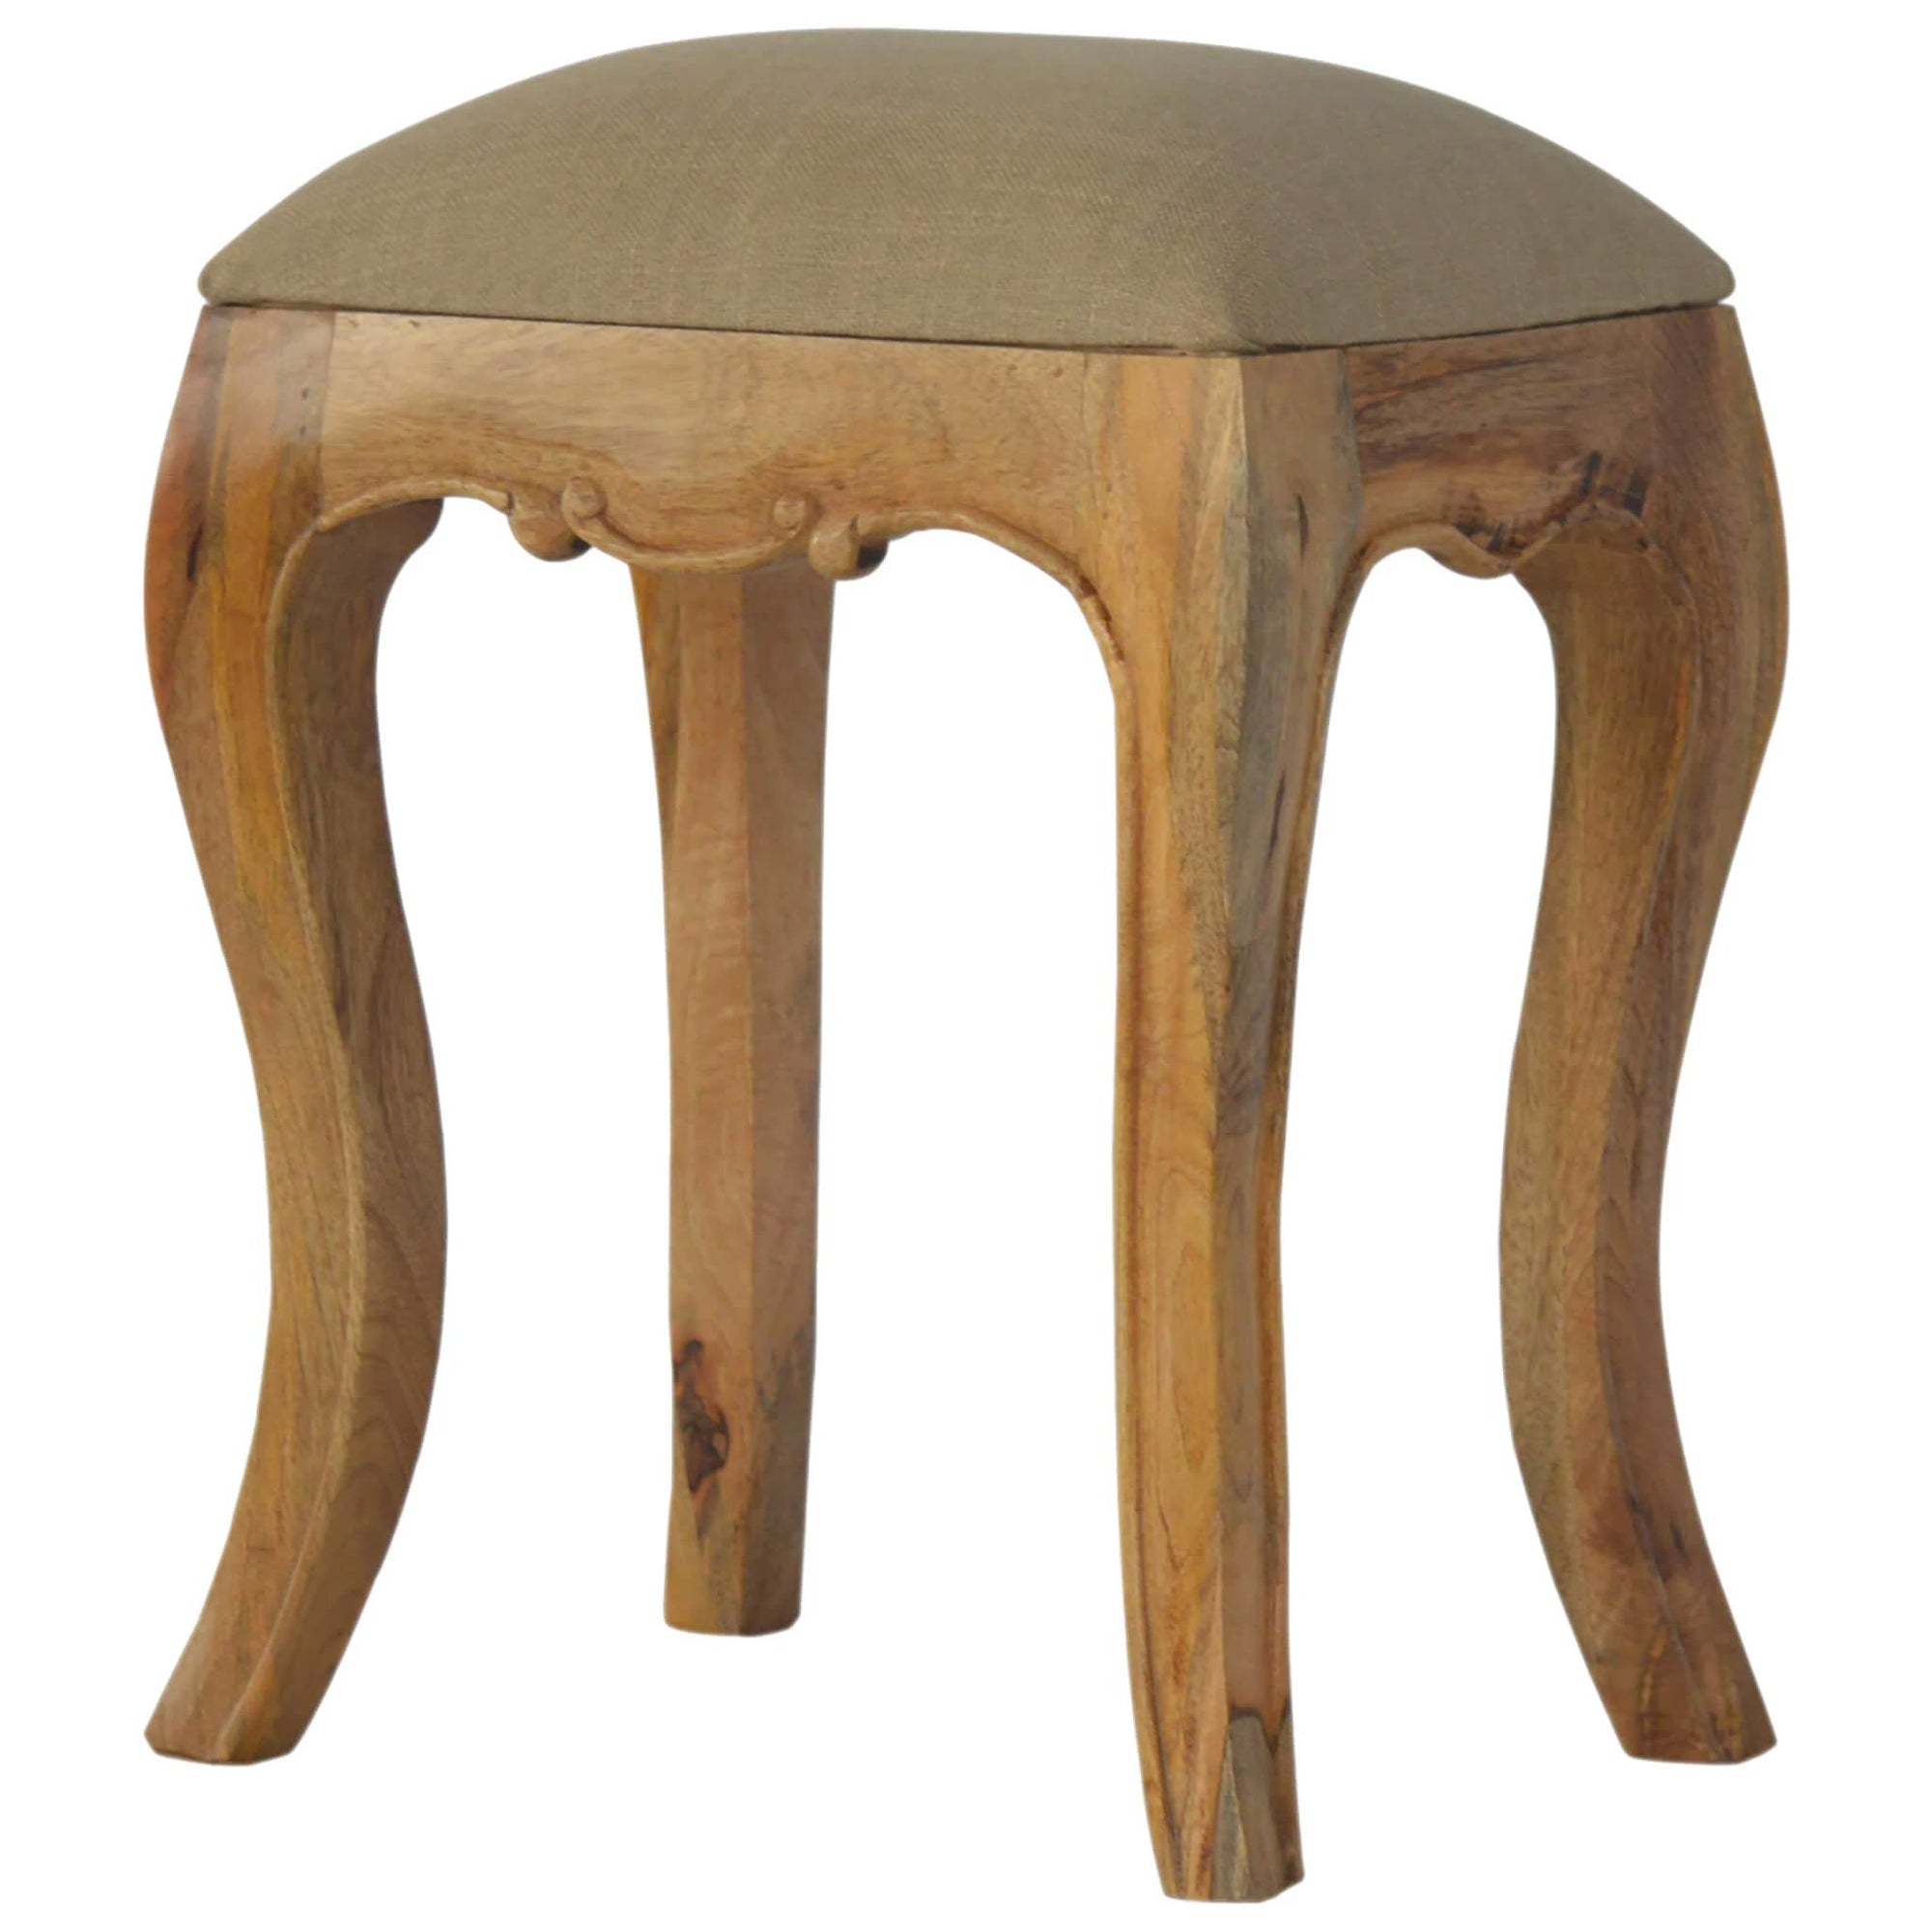 Artisan Chantilly Stool with Beige Linen Seat by Roseland Furniture